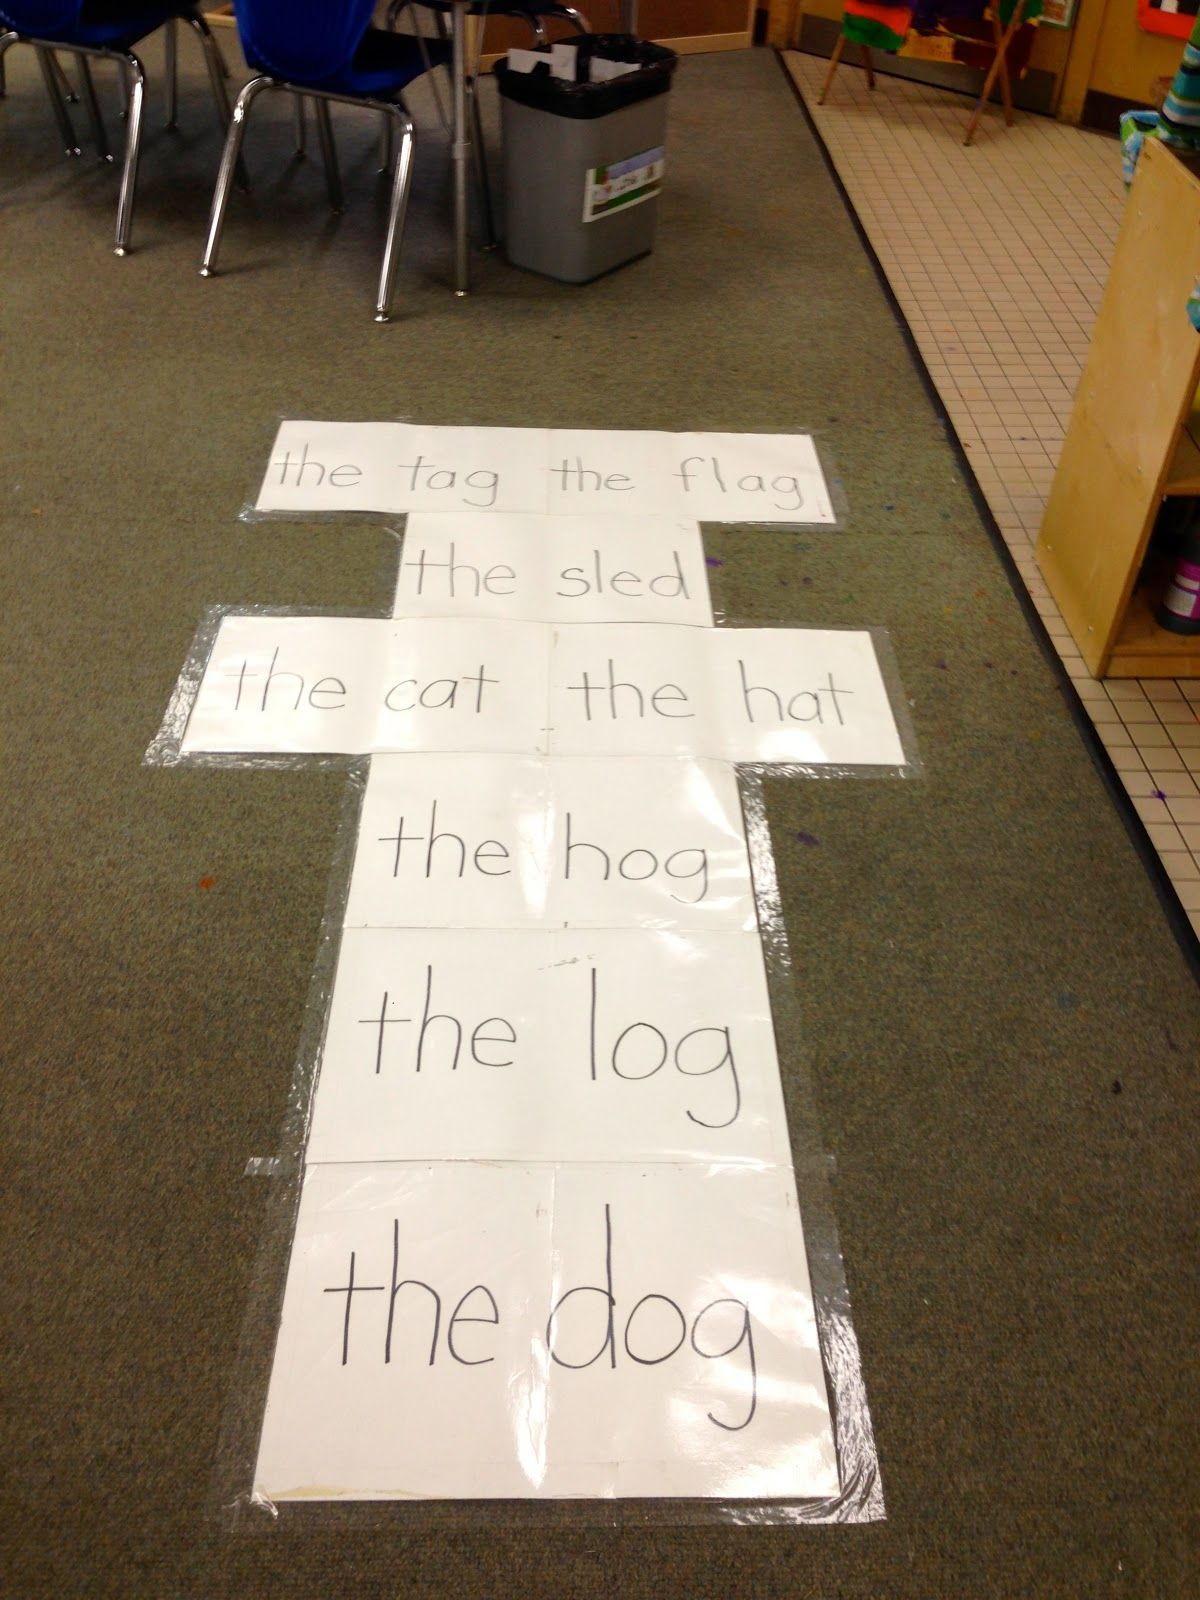 Laminate Sight Words Cvc Words Or Phrases And Tape To